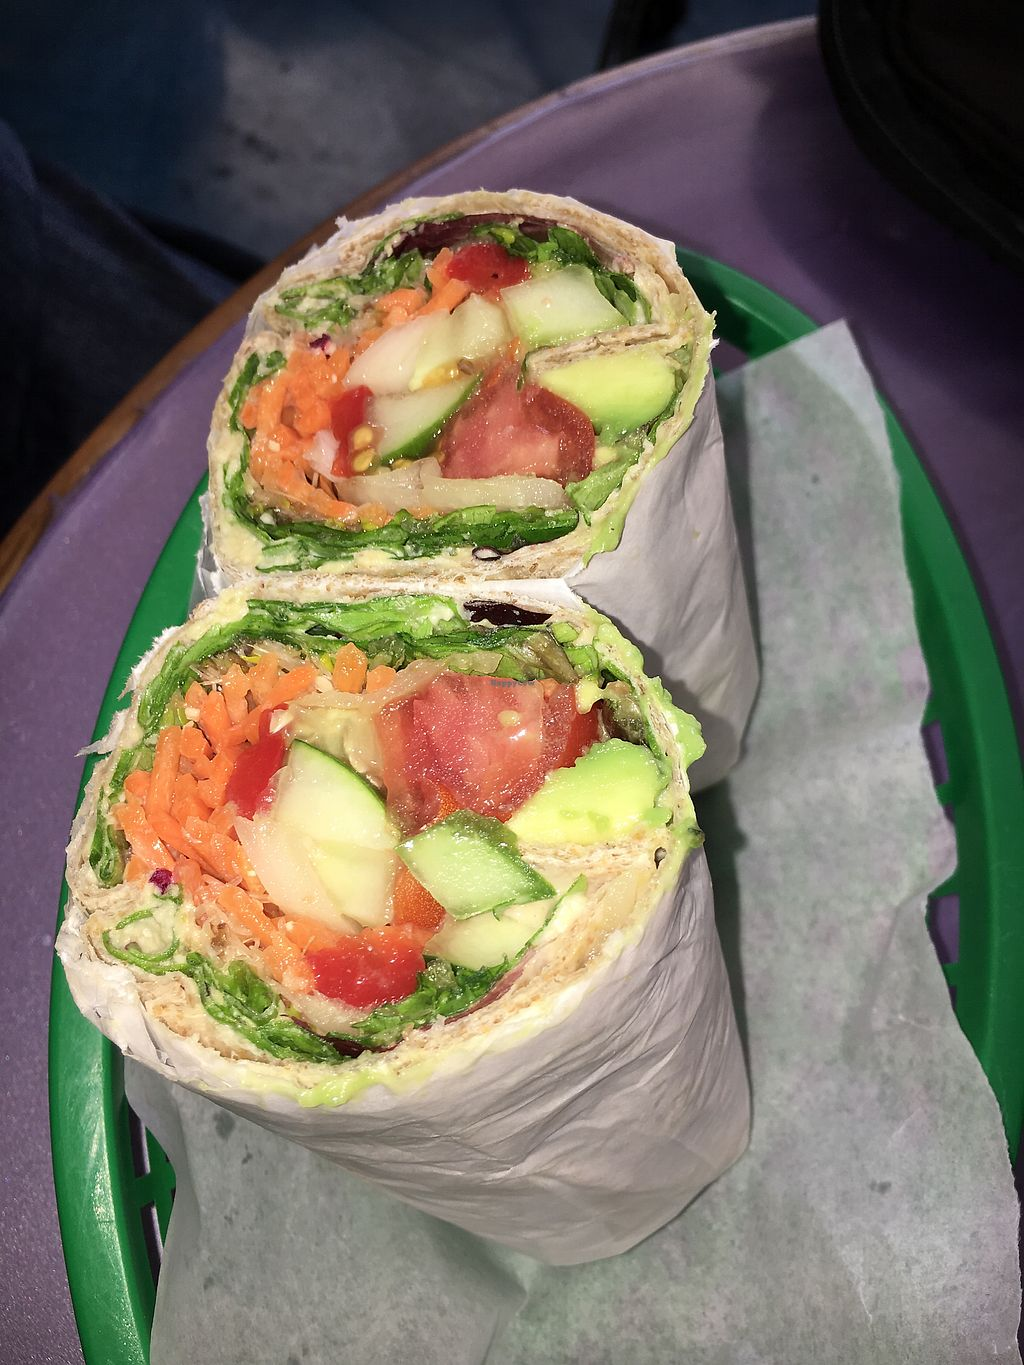 """Photo of Planet Juice  by <a href=""""/members/profile/daroff"""">daroff</a> <br/>Hummus Wrap  <br/> October 24, 2017  - <a href='/contact/abuse/image/103492/318452'>Report</a>"""